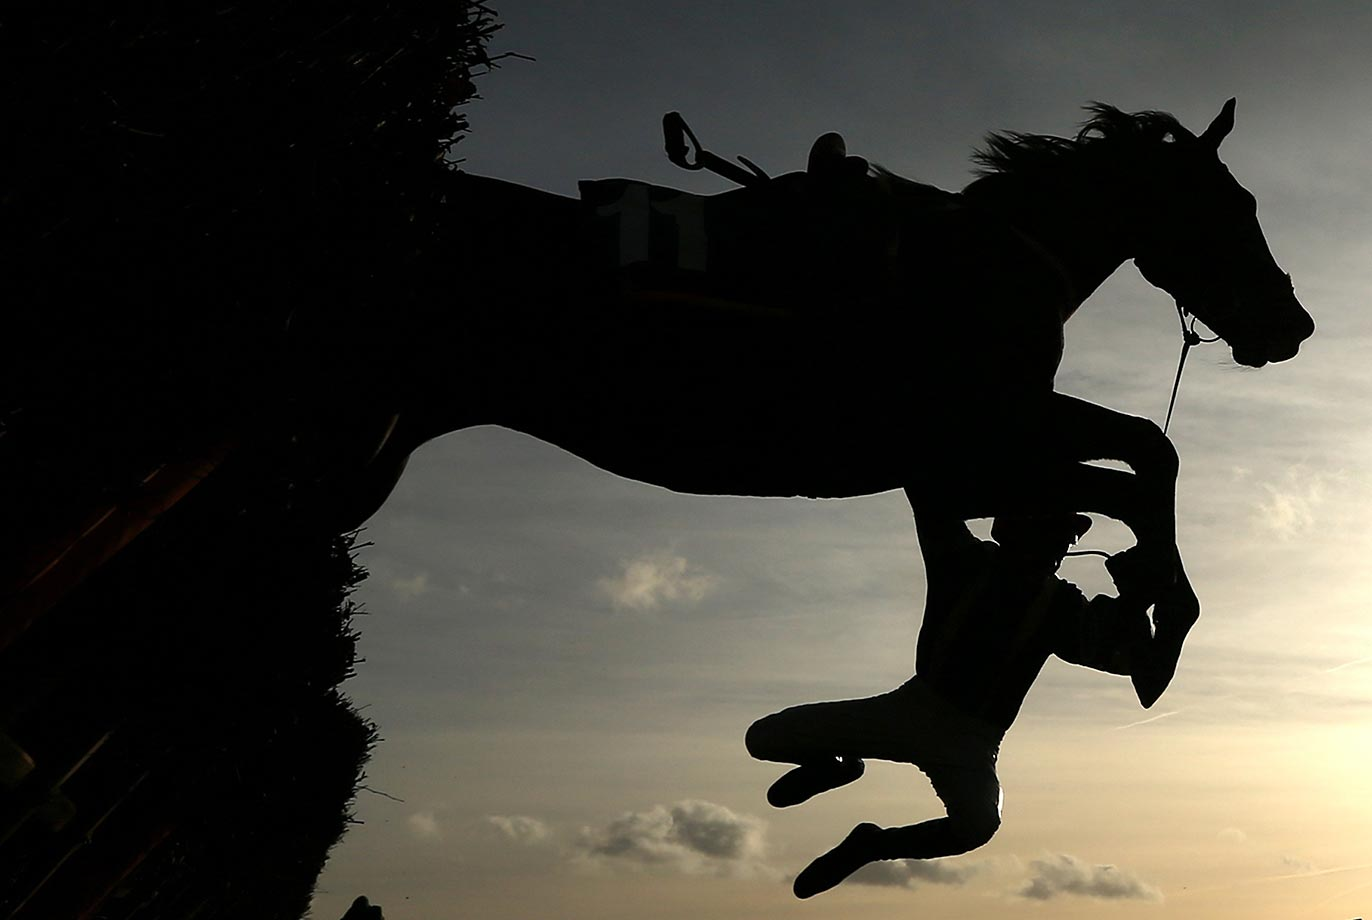 Jockey David Noonan falls from Steady Eddie at the first fence during a hurdle race at Doncaster Racecourse.